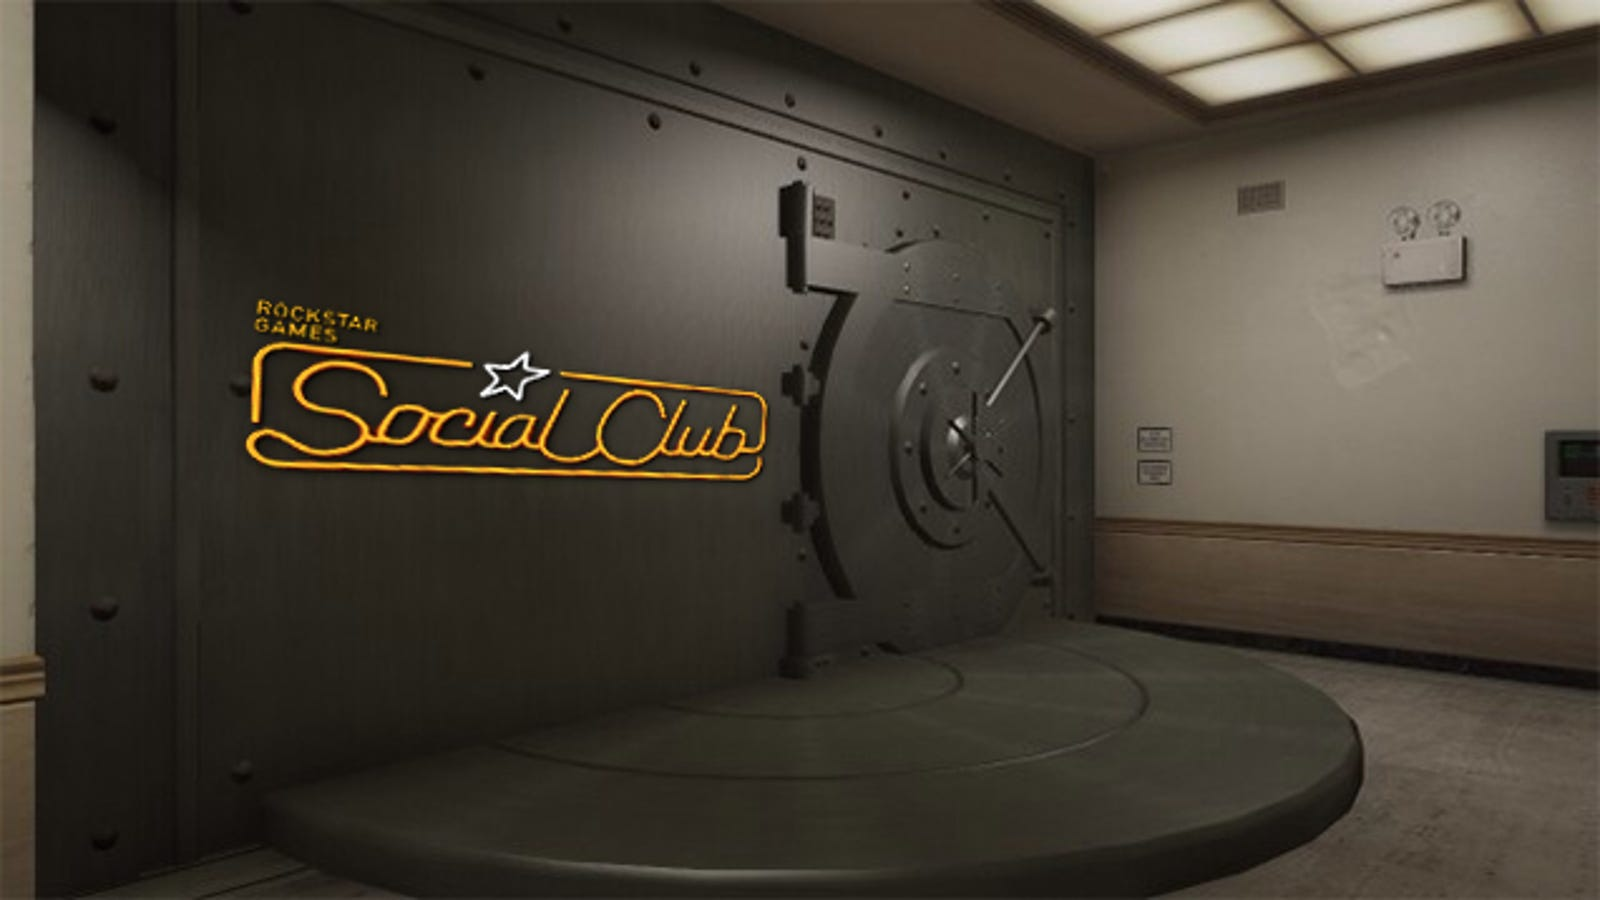 Rockstar Social Club Ticket